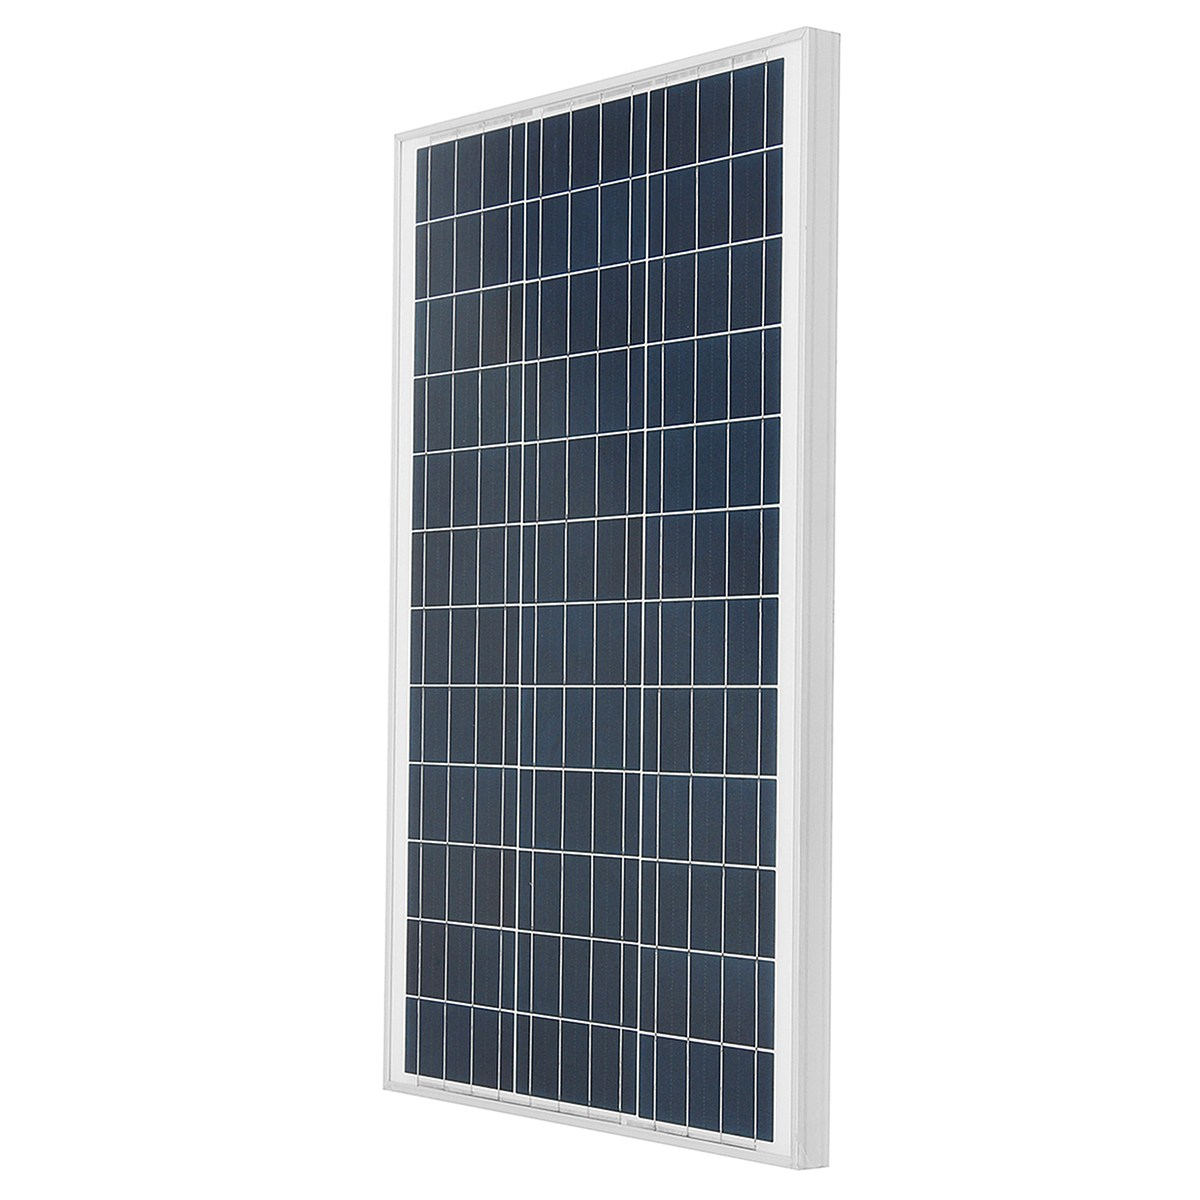 KINCO 60w 18v Polycrystalline Silicon Solar Panel With Glass Bearing Plate Suitable For Car Battery Used With Wind Generator